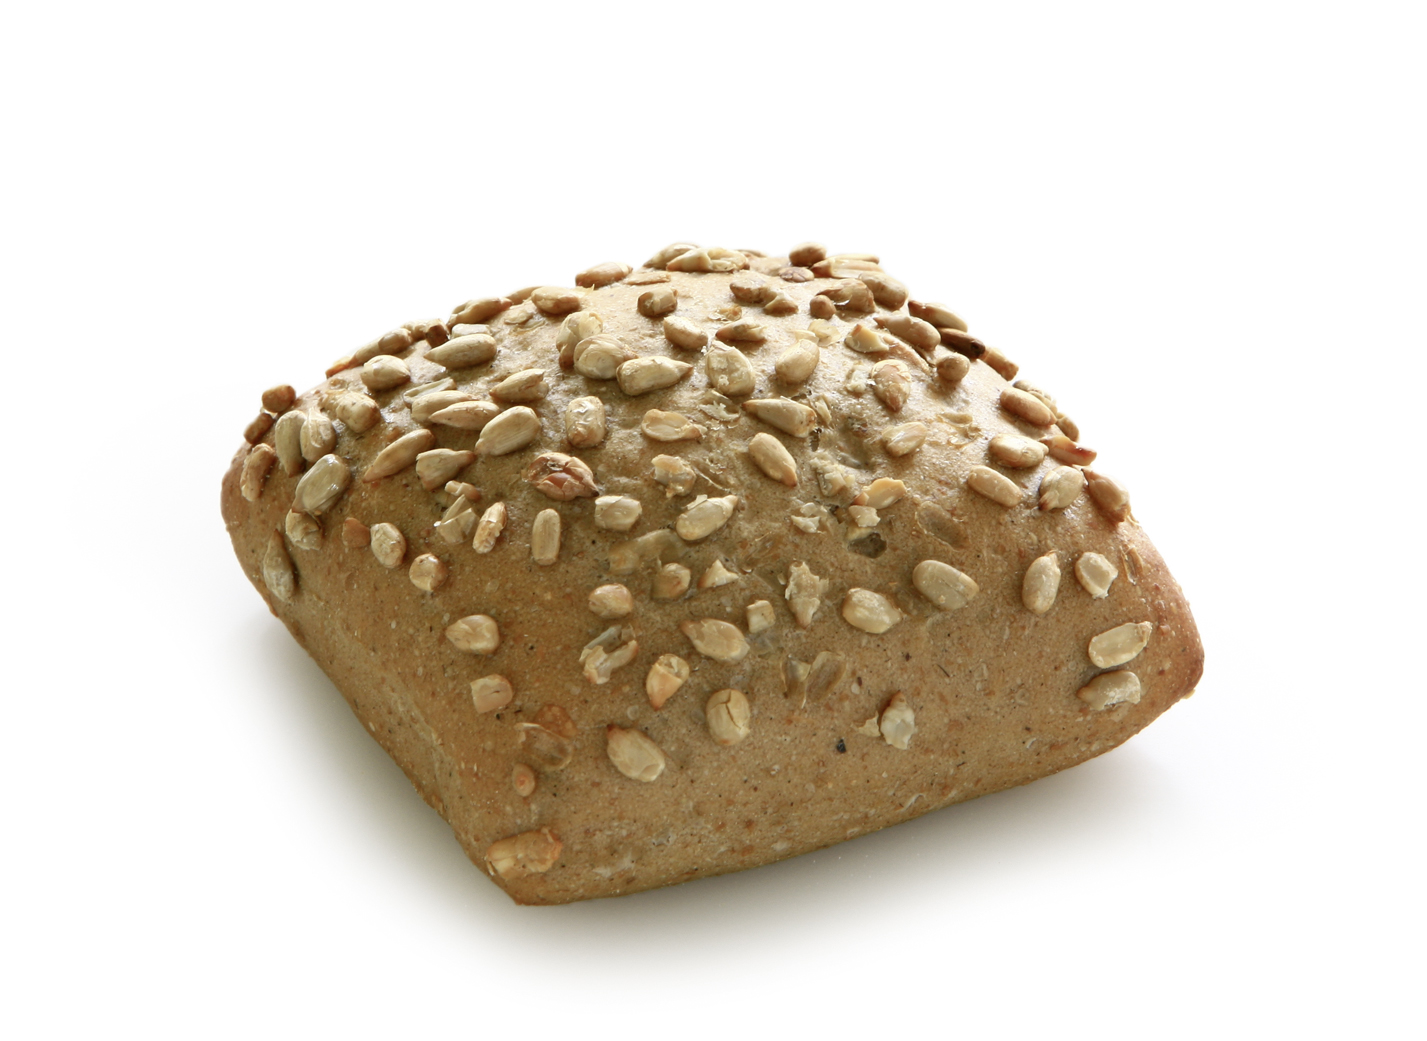 Sunflower Seed Roll - Wheat roll with 10% sunflower seeds inside and outside